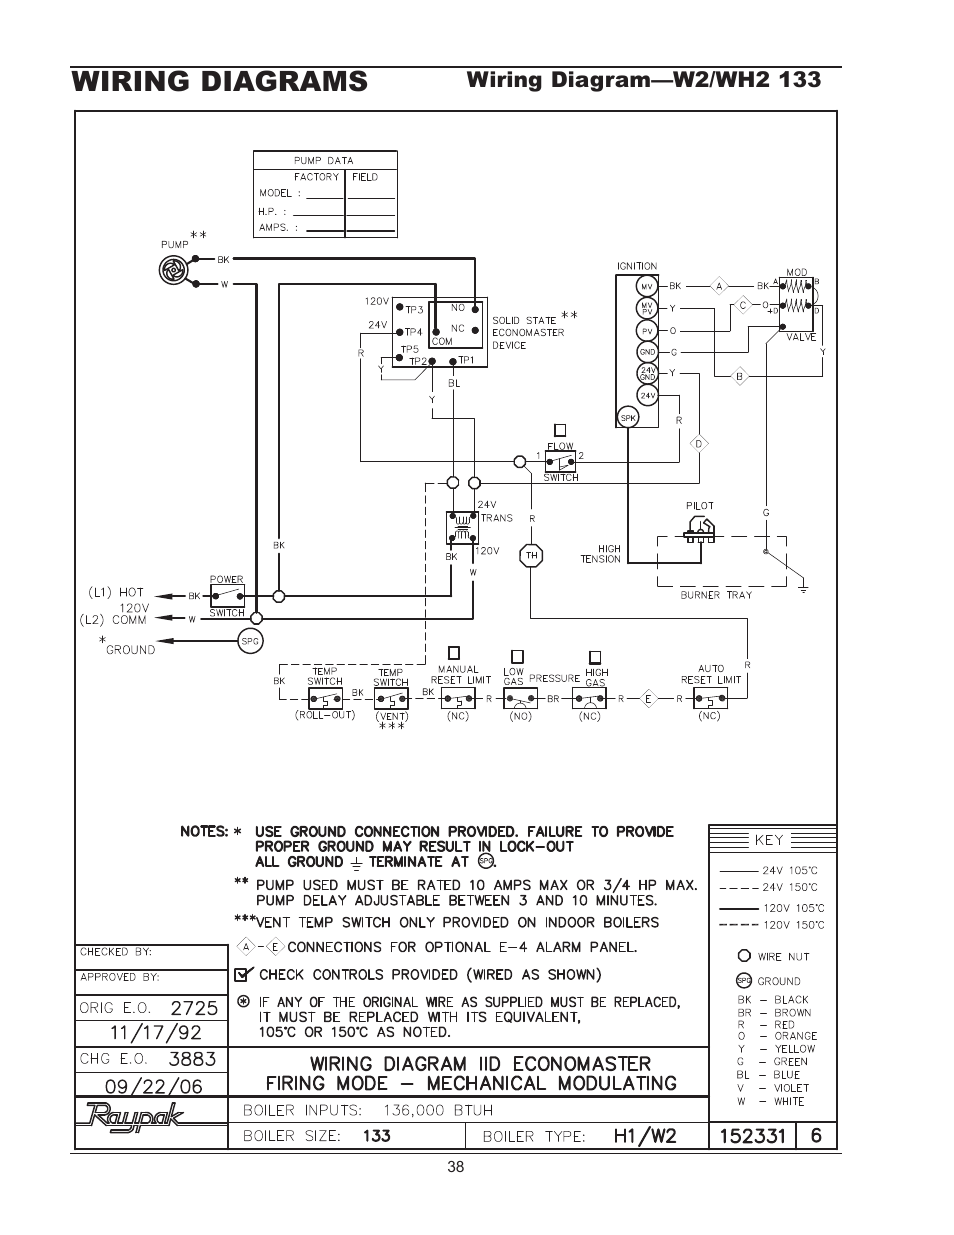 Wiring Diagrams  Wiring Diagram U2014wh1 0181  0261